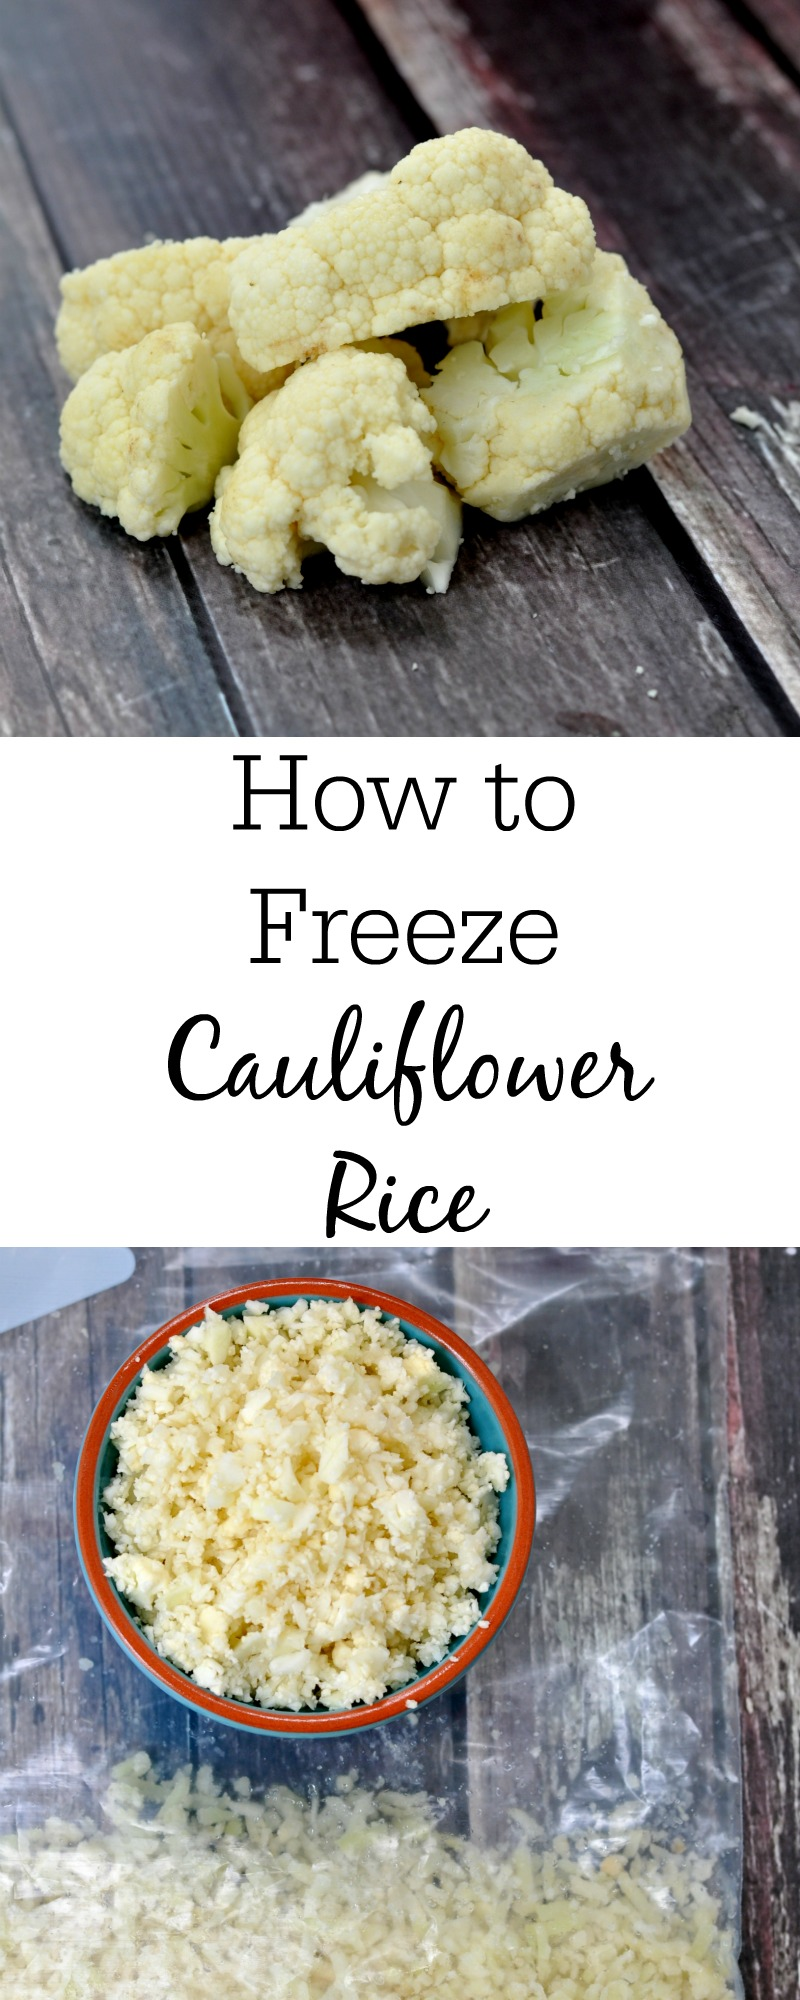 How to Perfectly Freeze Cauliflower Rice